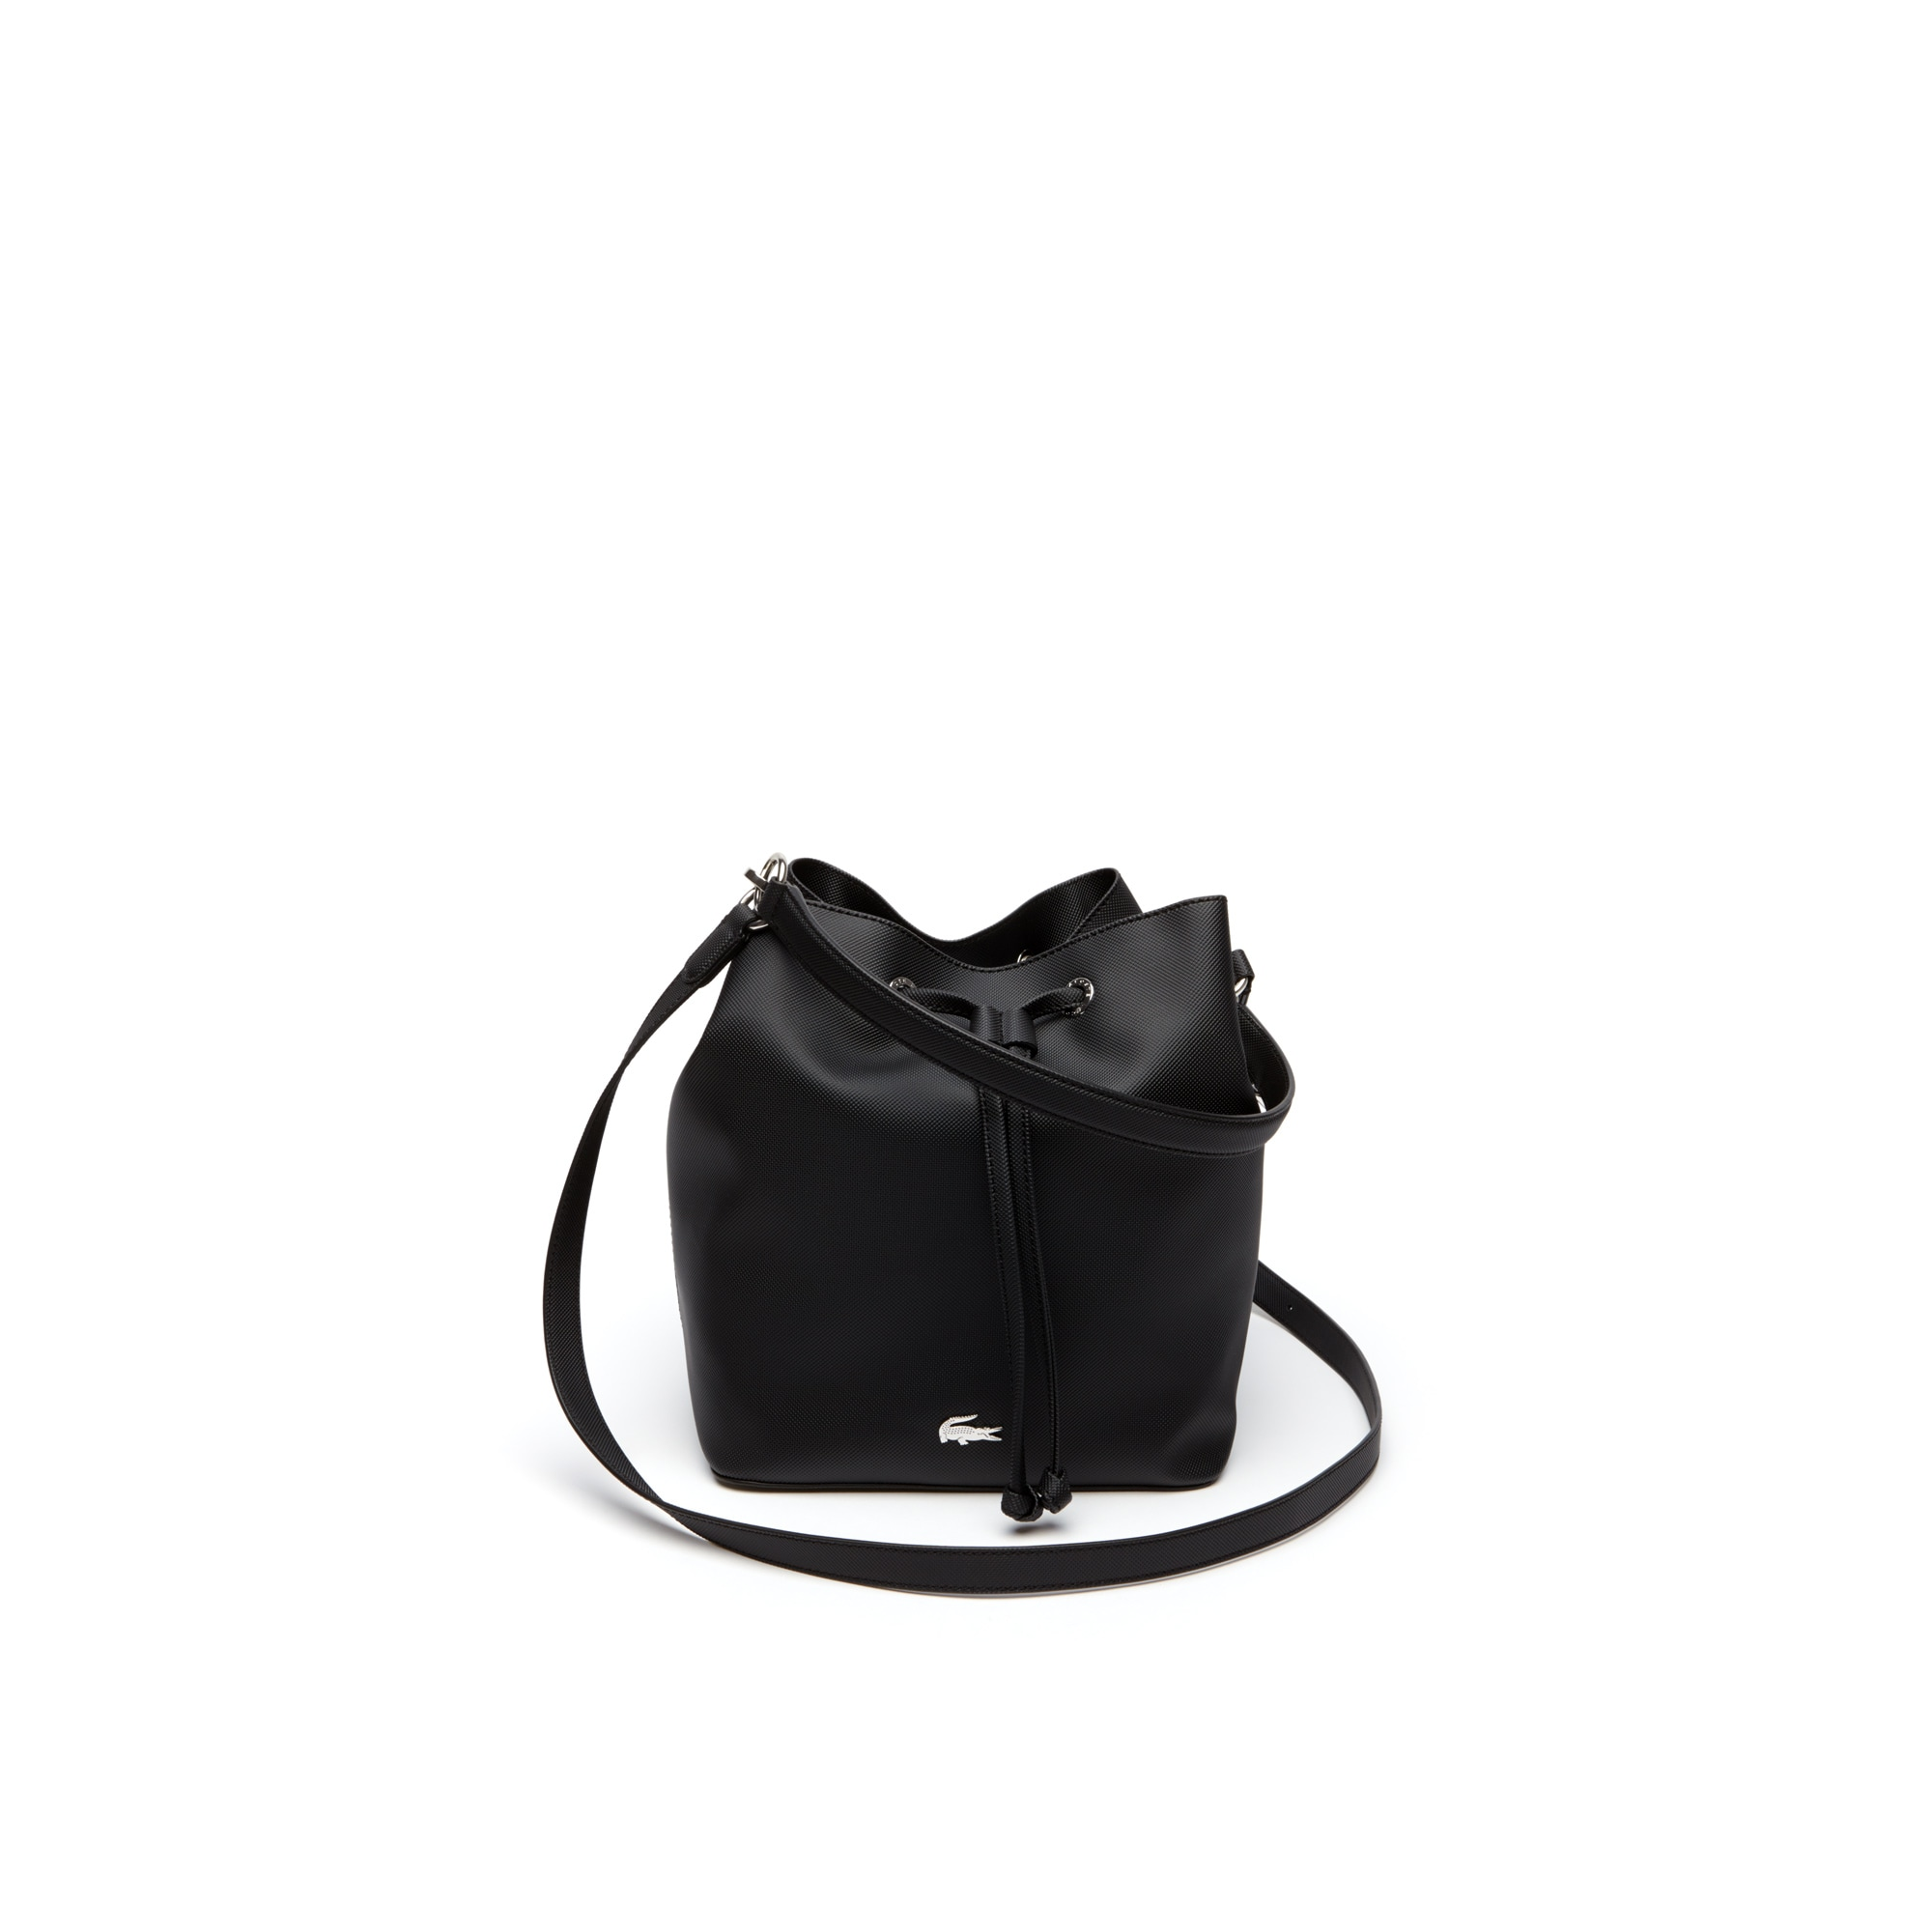 Women's Daily Classic Coated Piqué Canvas Bucket Bag